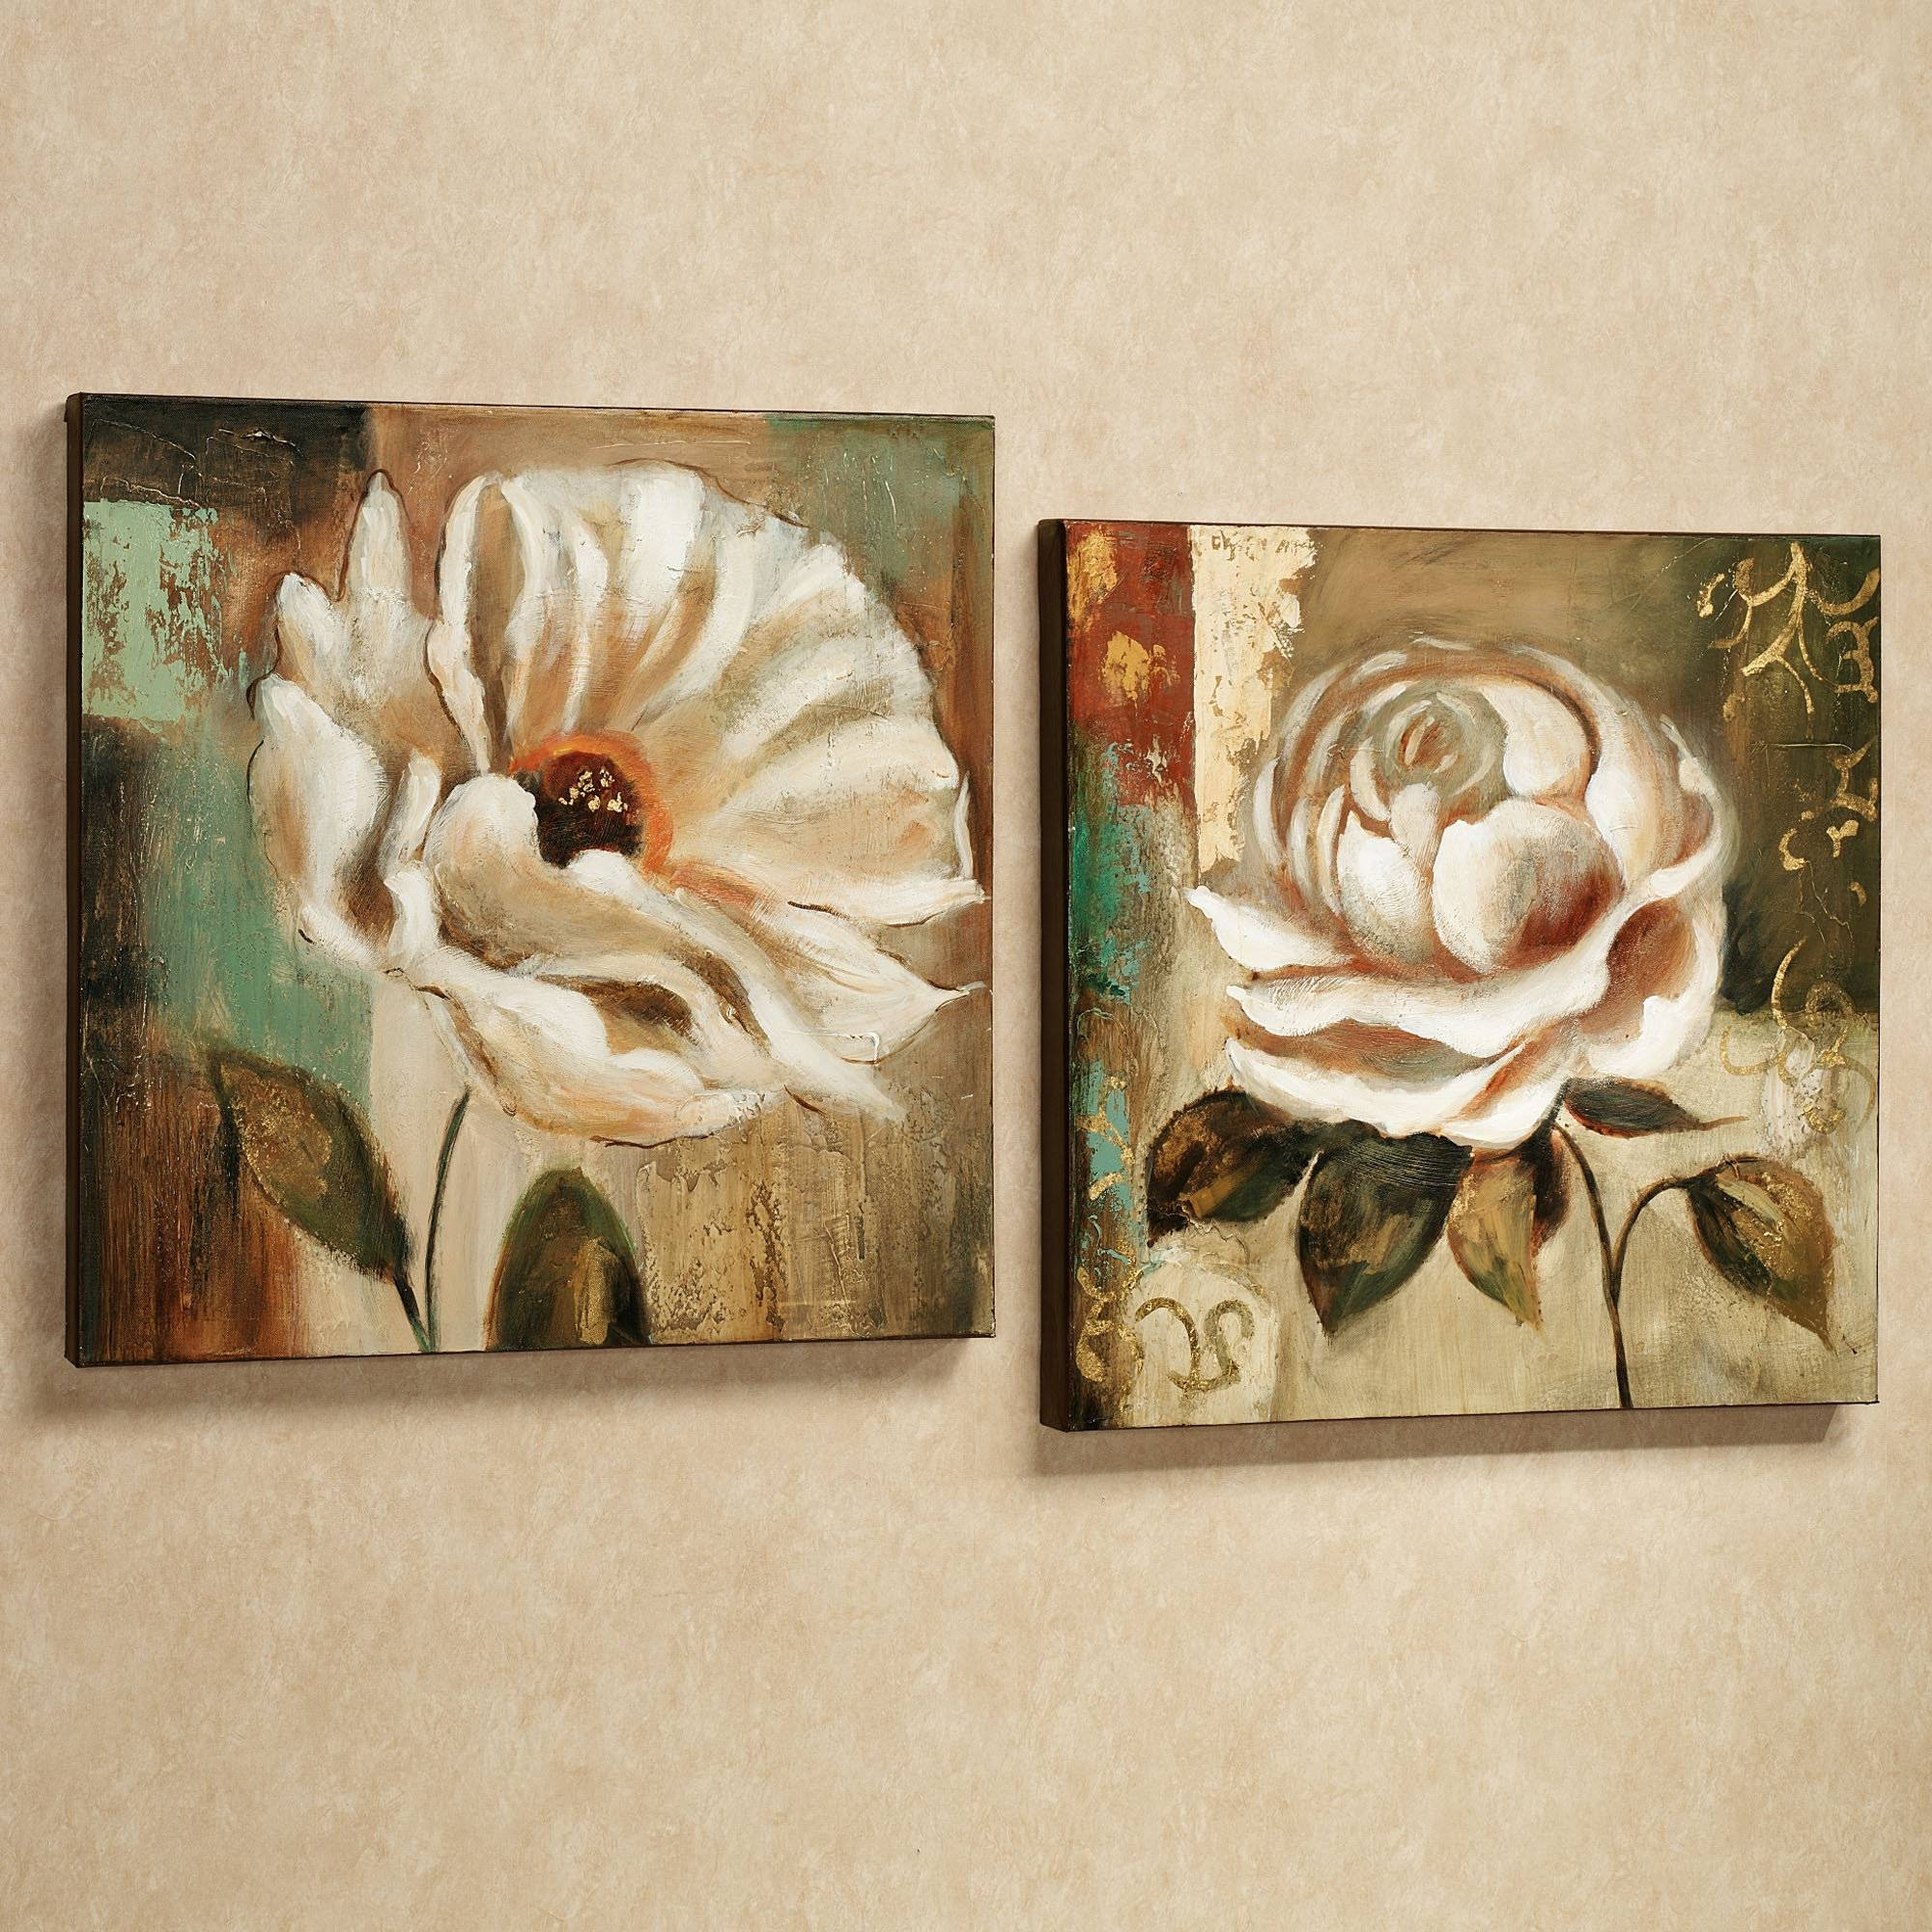 Wall Art Designs: Floral Canvas Wall Art Garden Canvas Floral Wall With Latest Multi Panel Canvas Wall Art (View 20 of 20)